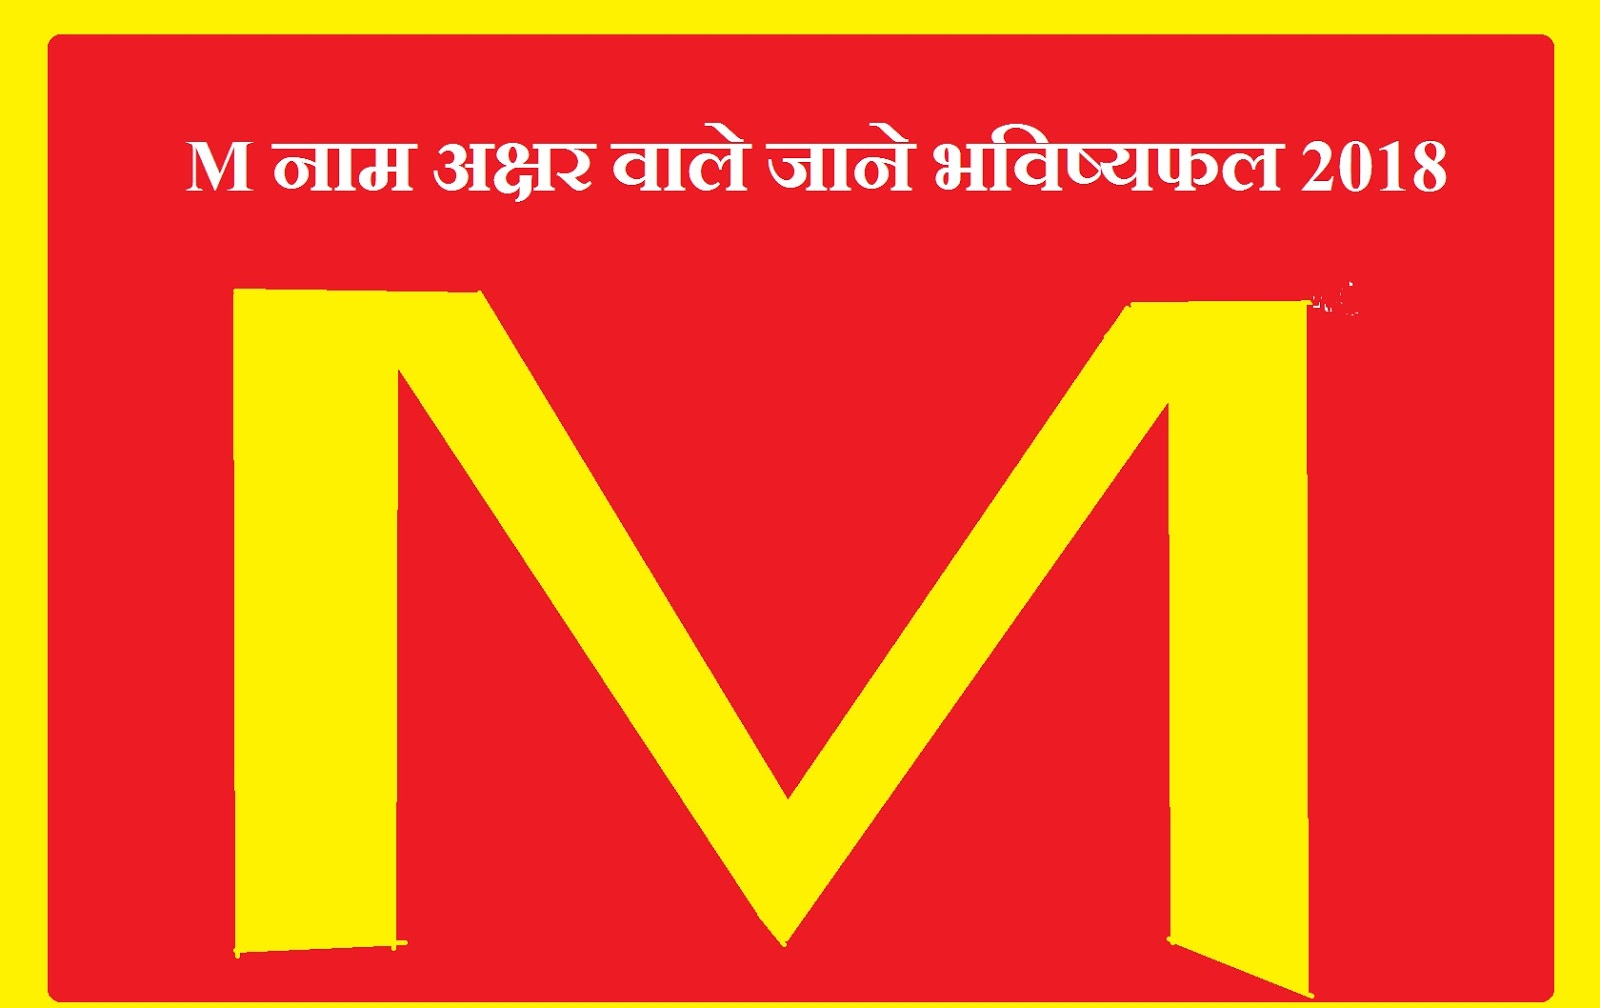 M NAME HOROSCOPE 2018 IN HINDI- M NAME RASHIFAL 2018 IN HINDI- M